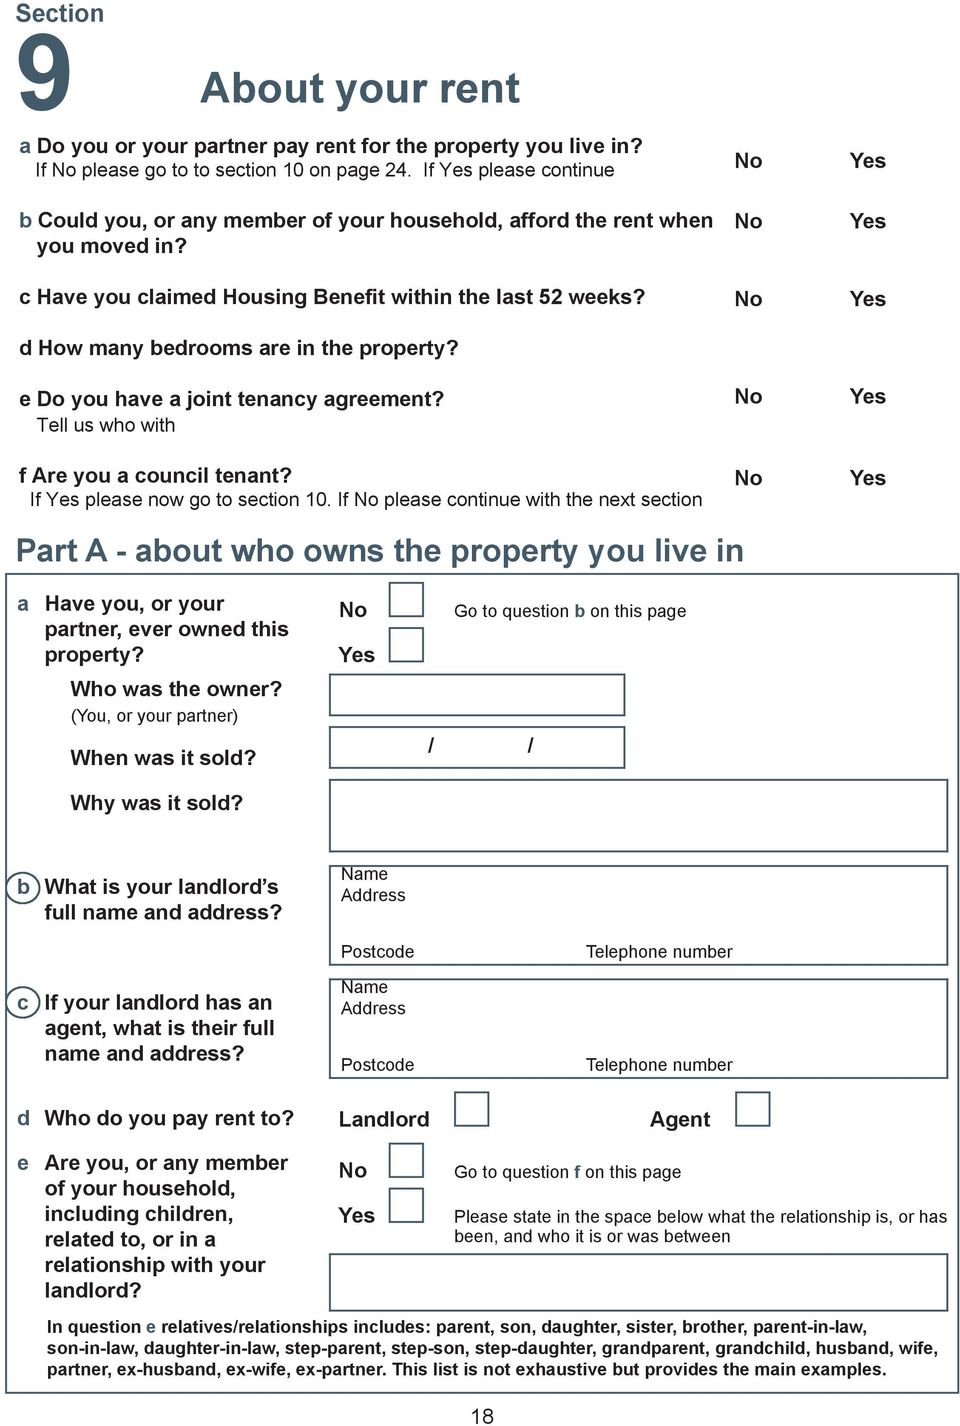 d How many bedrooms are in the property? e Do you have a joint tenancy agreement? Tell us who with f Are you a council tenant? If please now go to section 10.